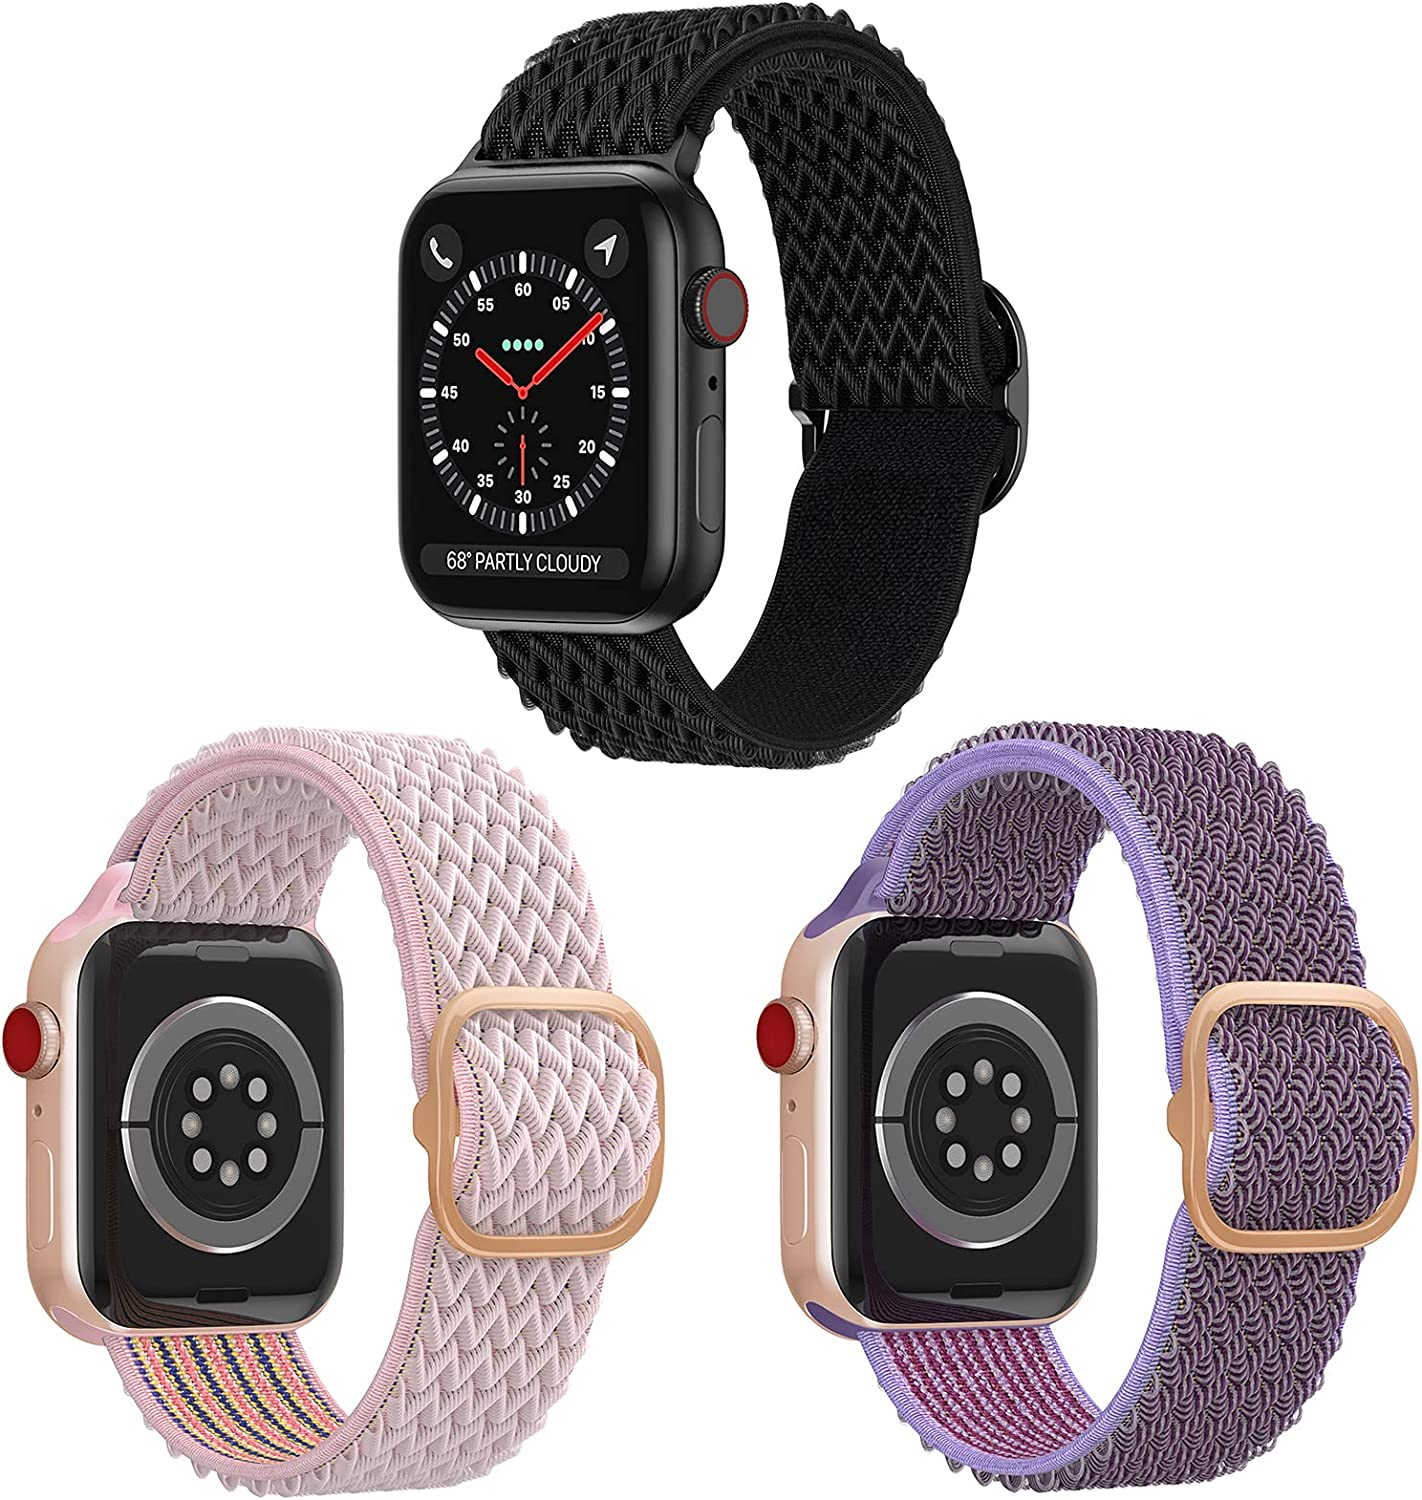 iHillon Nylon Solo Loop Bands Compatible with Apple Watch 44mm 42mm 40mm 38mm, Adjust Stretchy Braided Elastic Sport Velcro Replacement Wristbands for iWatch Series 6/SE/5/4/3/2/1 Women Men